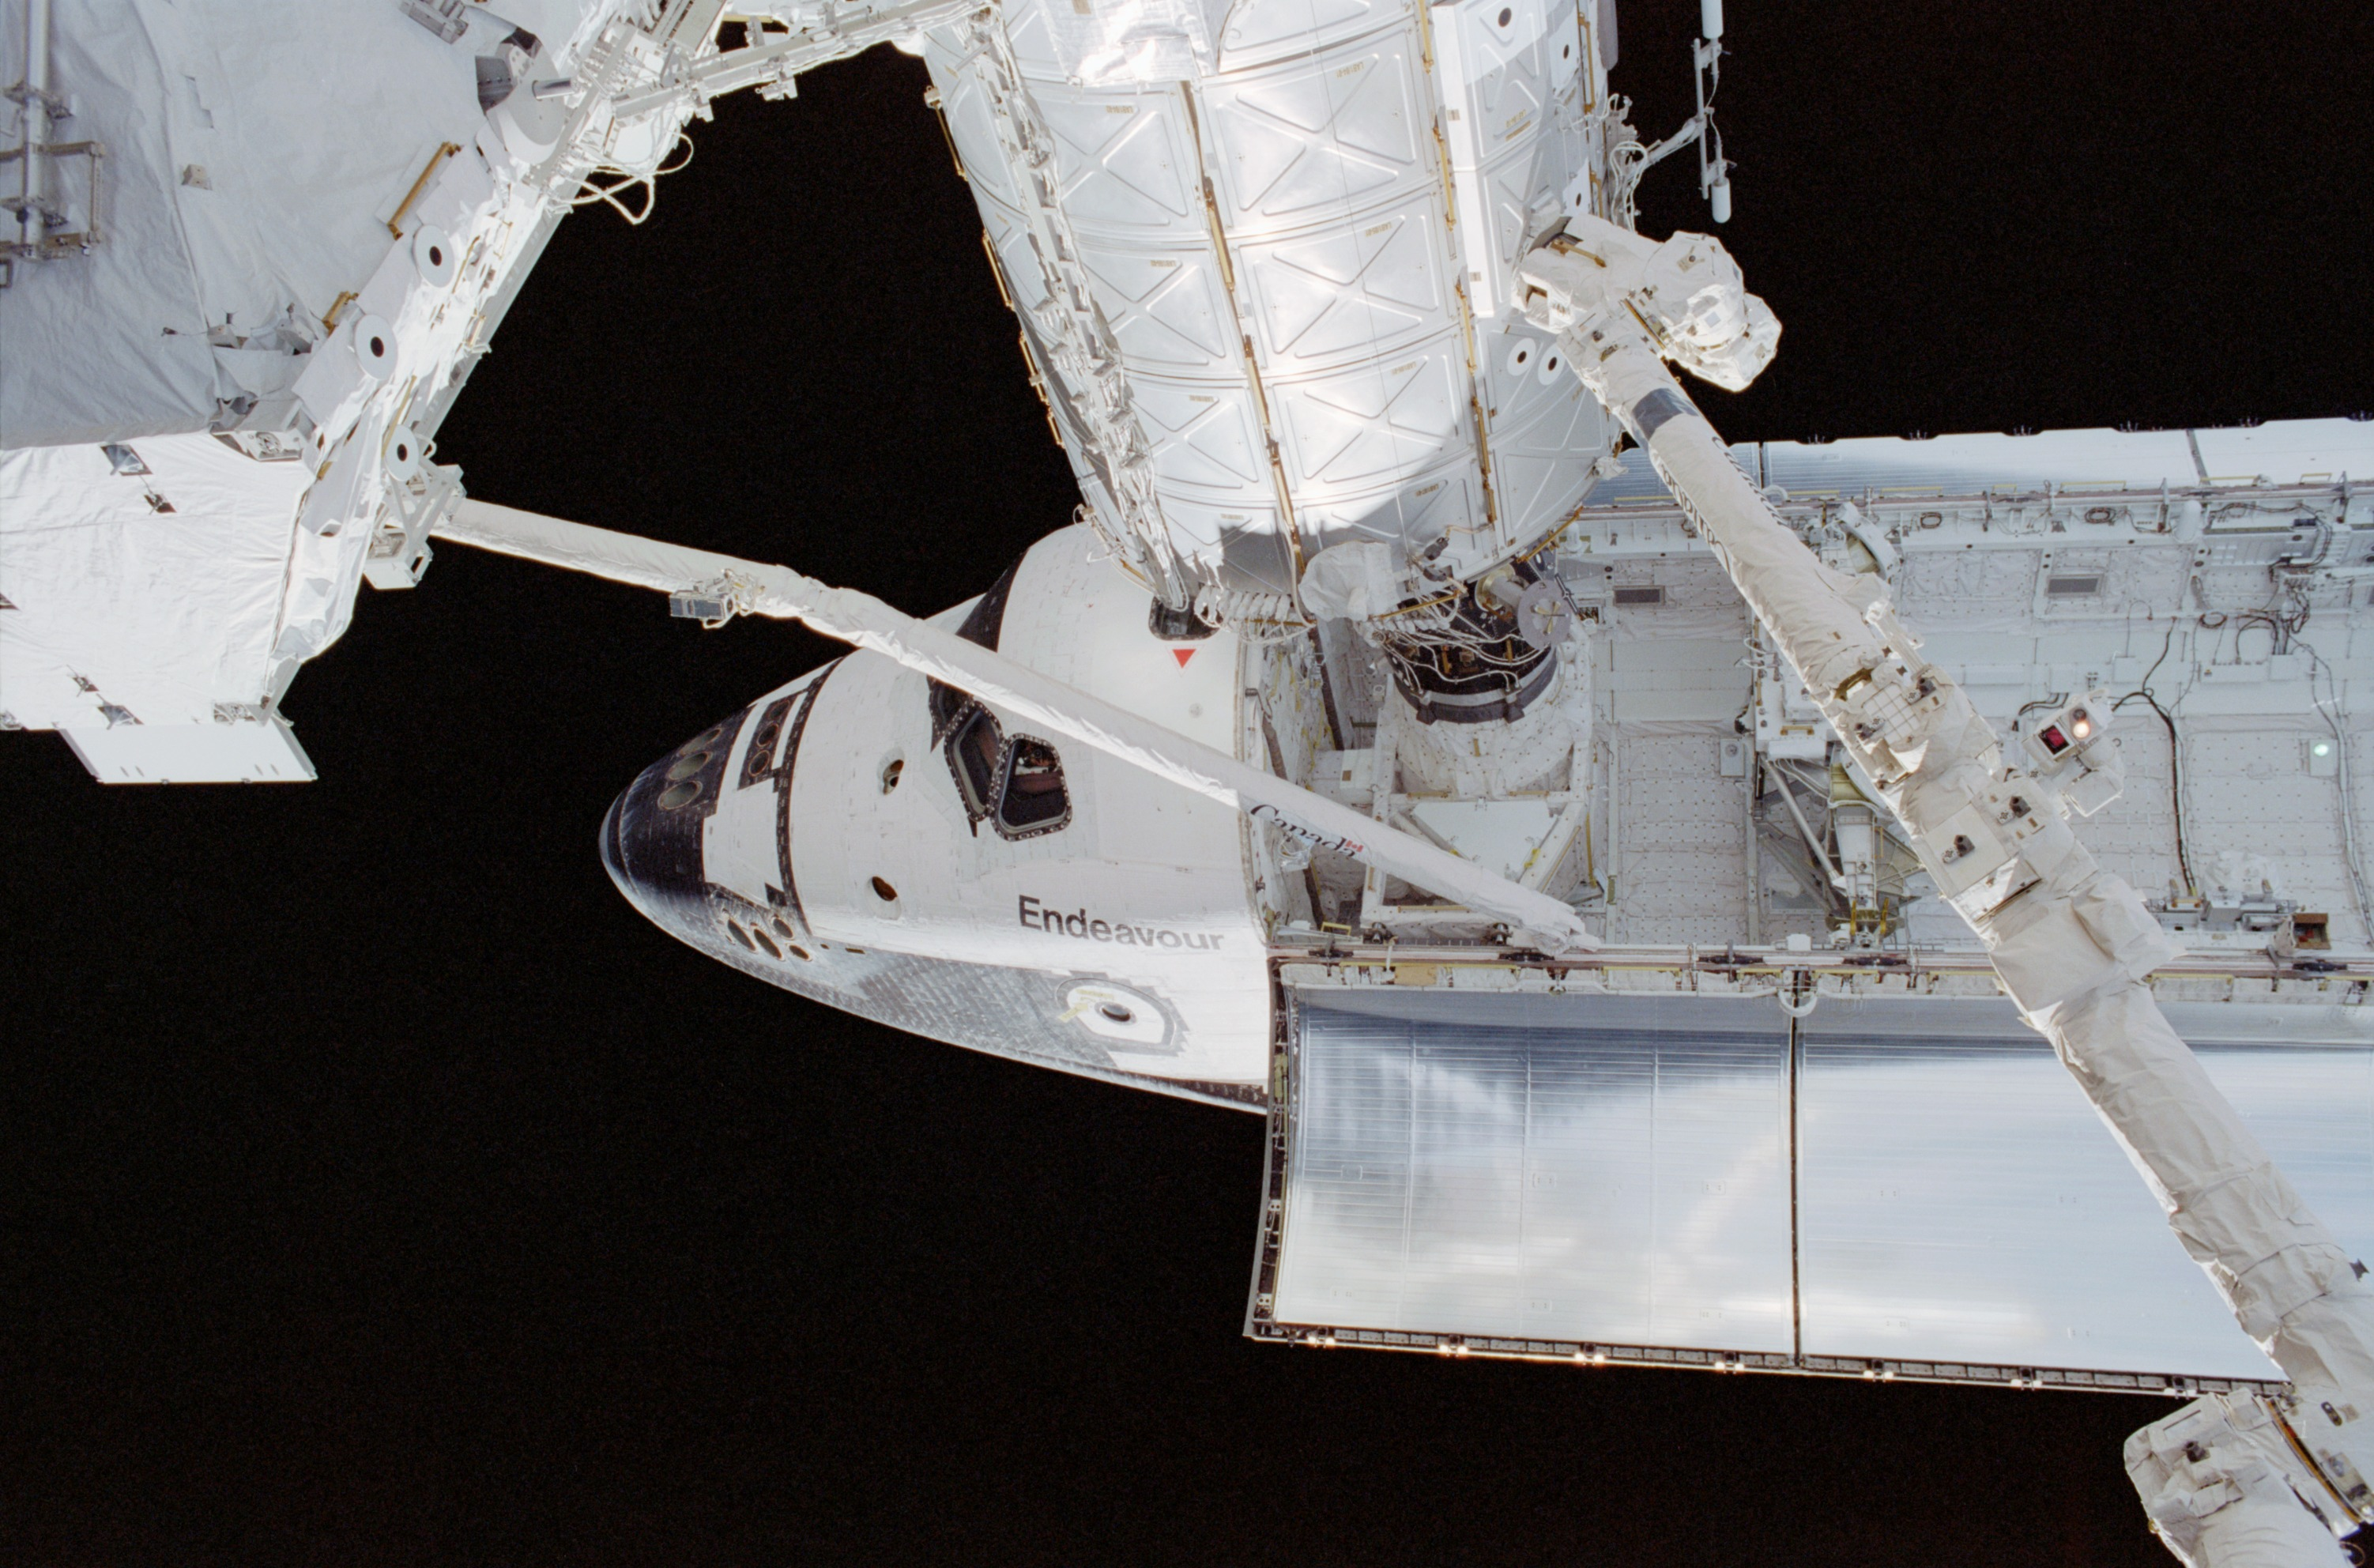 Endeavour docked to the ISS